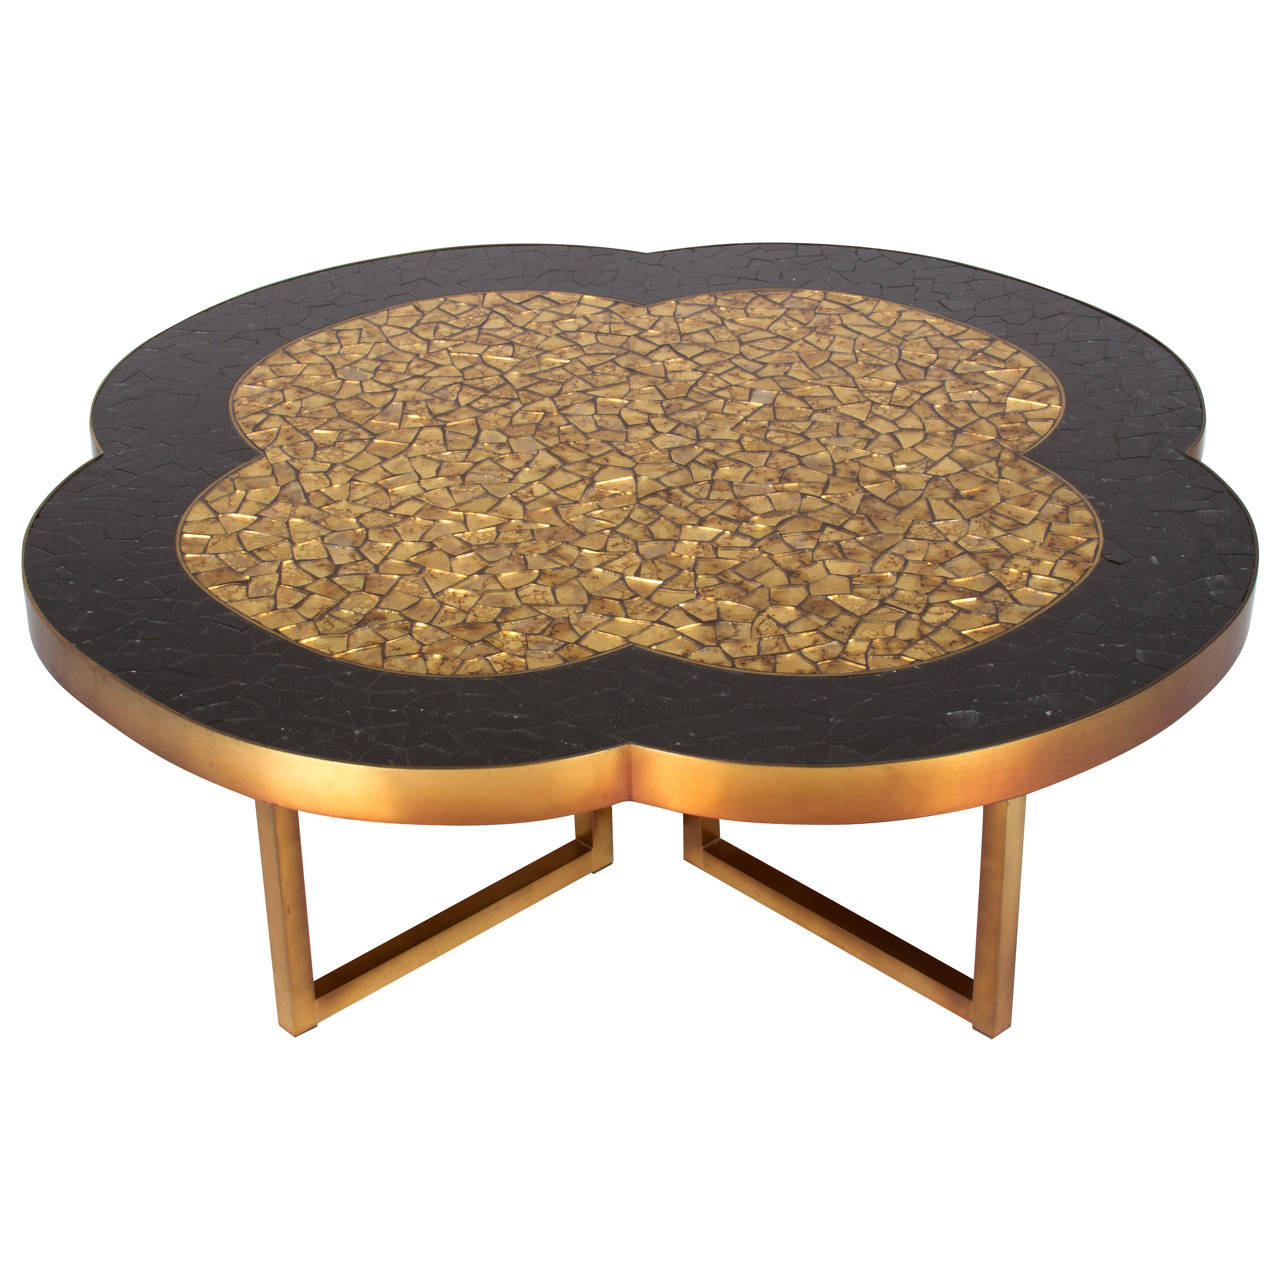 Fashionable Gold Leaf Collection Coffee Tables With Gold Leaf And Black Glass Mosaic Quatrefoil Coffee Table Black Ping (View 15 of 20)